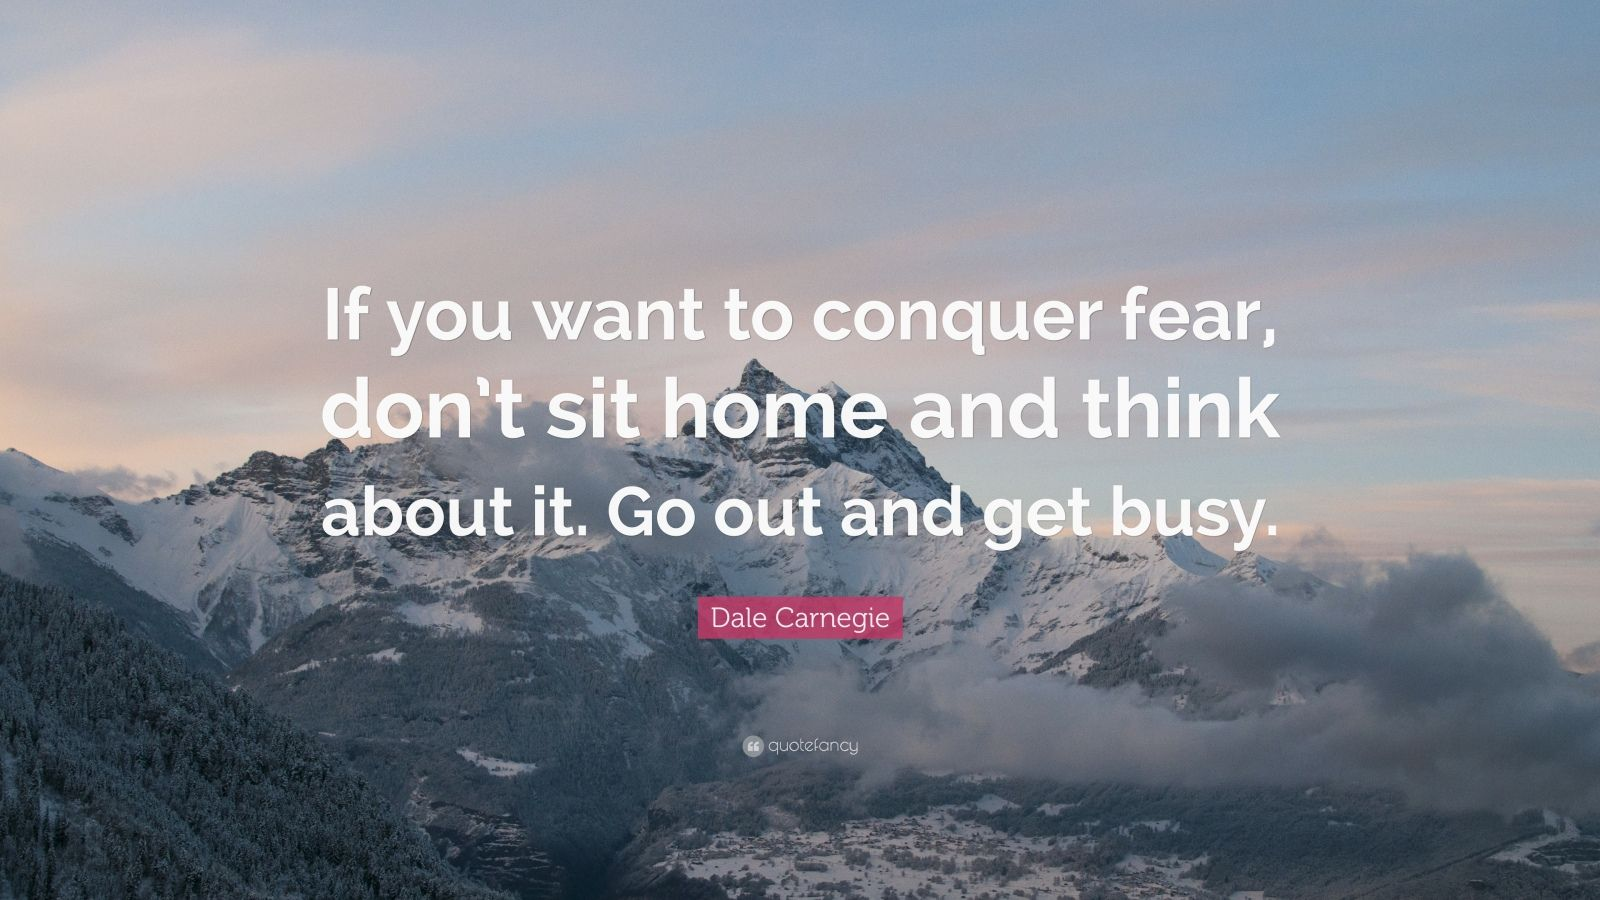 """Dale Carnegie Quote: """"If you want to conquer fear, don't sit home and think about it. Go out and get busy."""""""